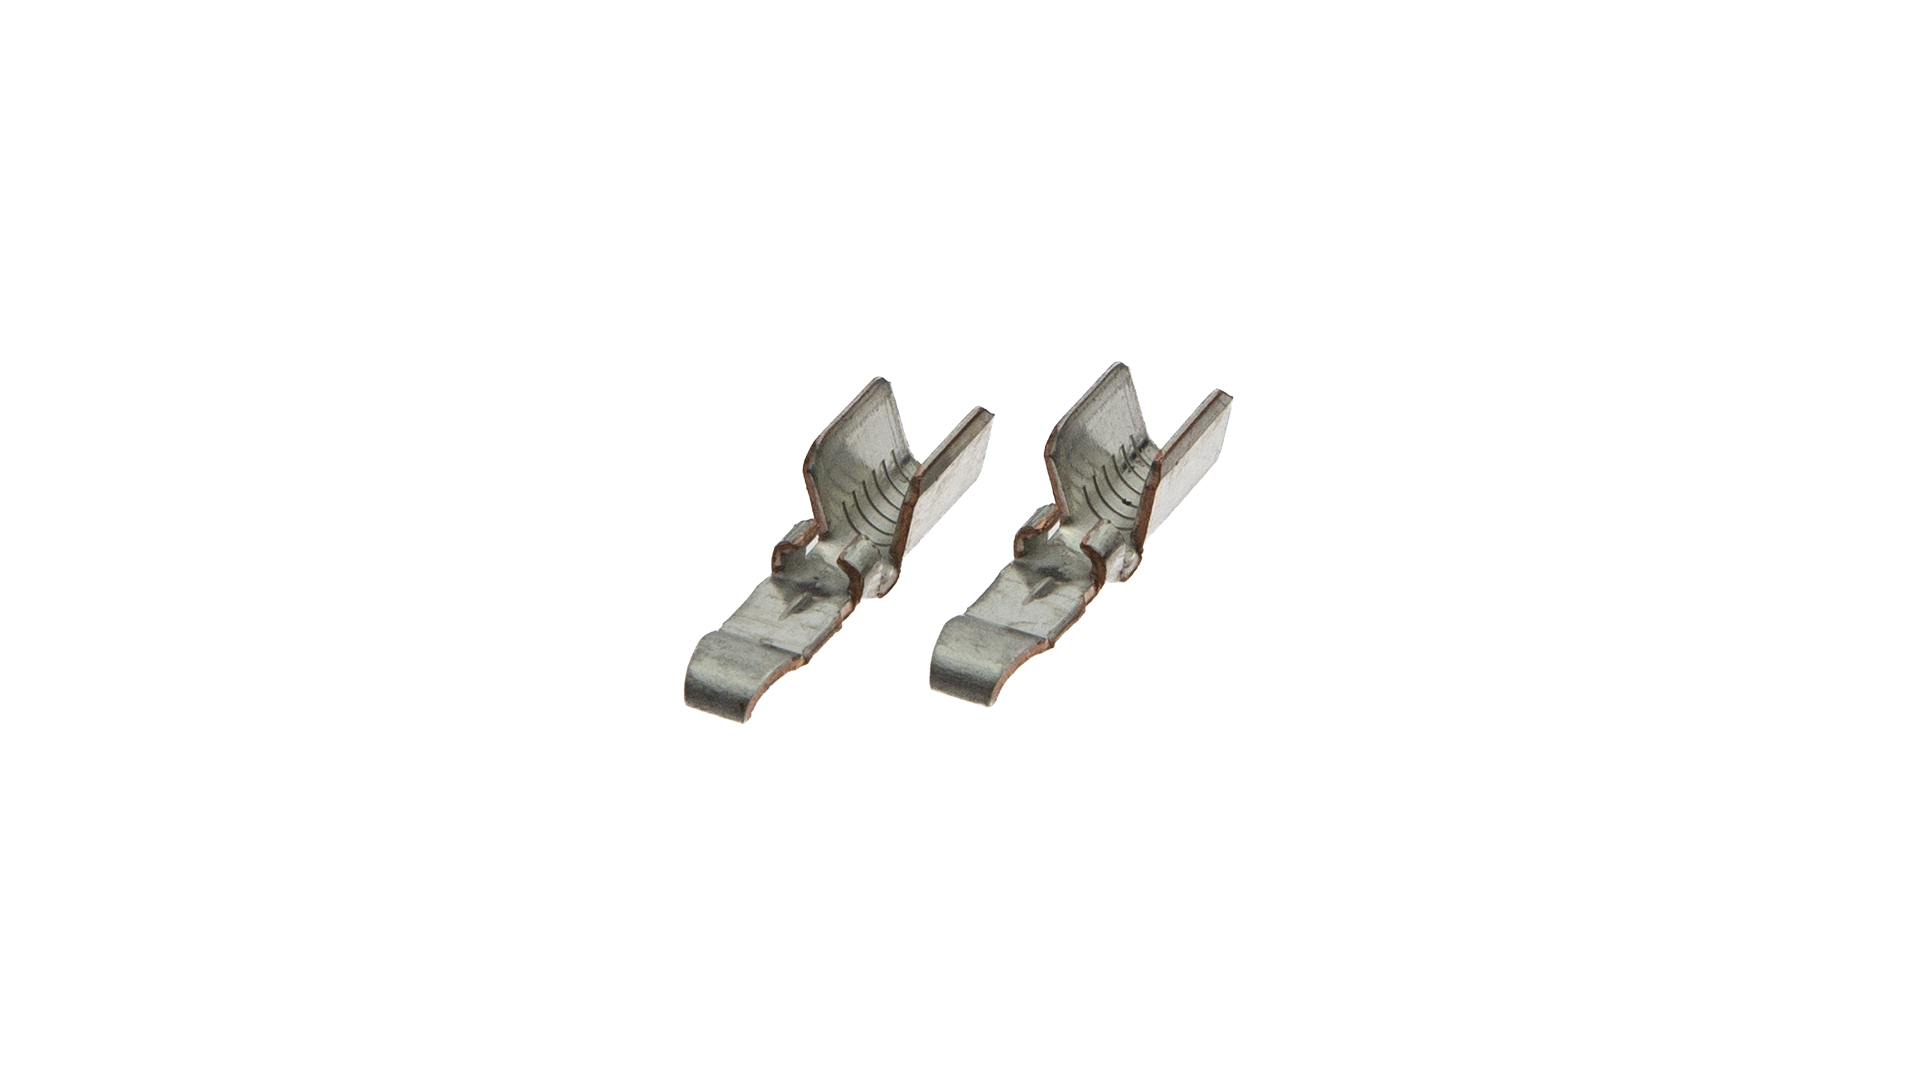 PP15-45 Silver Plated Power Contacts Open Barrel Contact